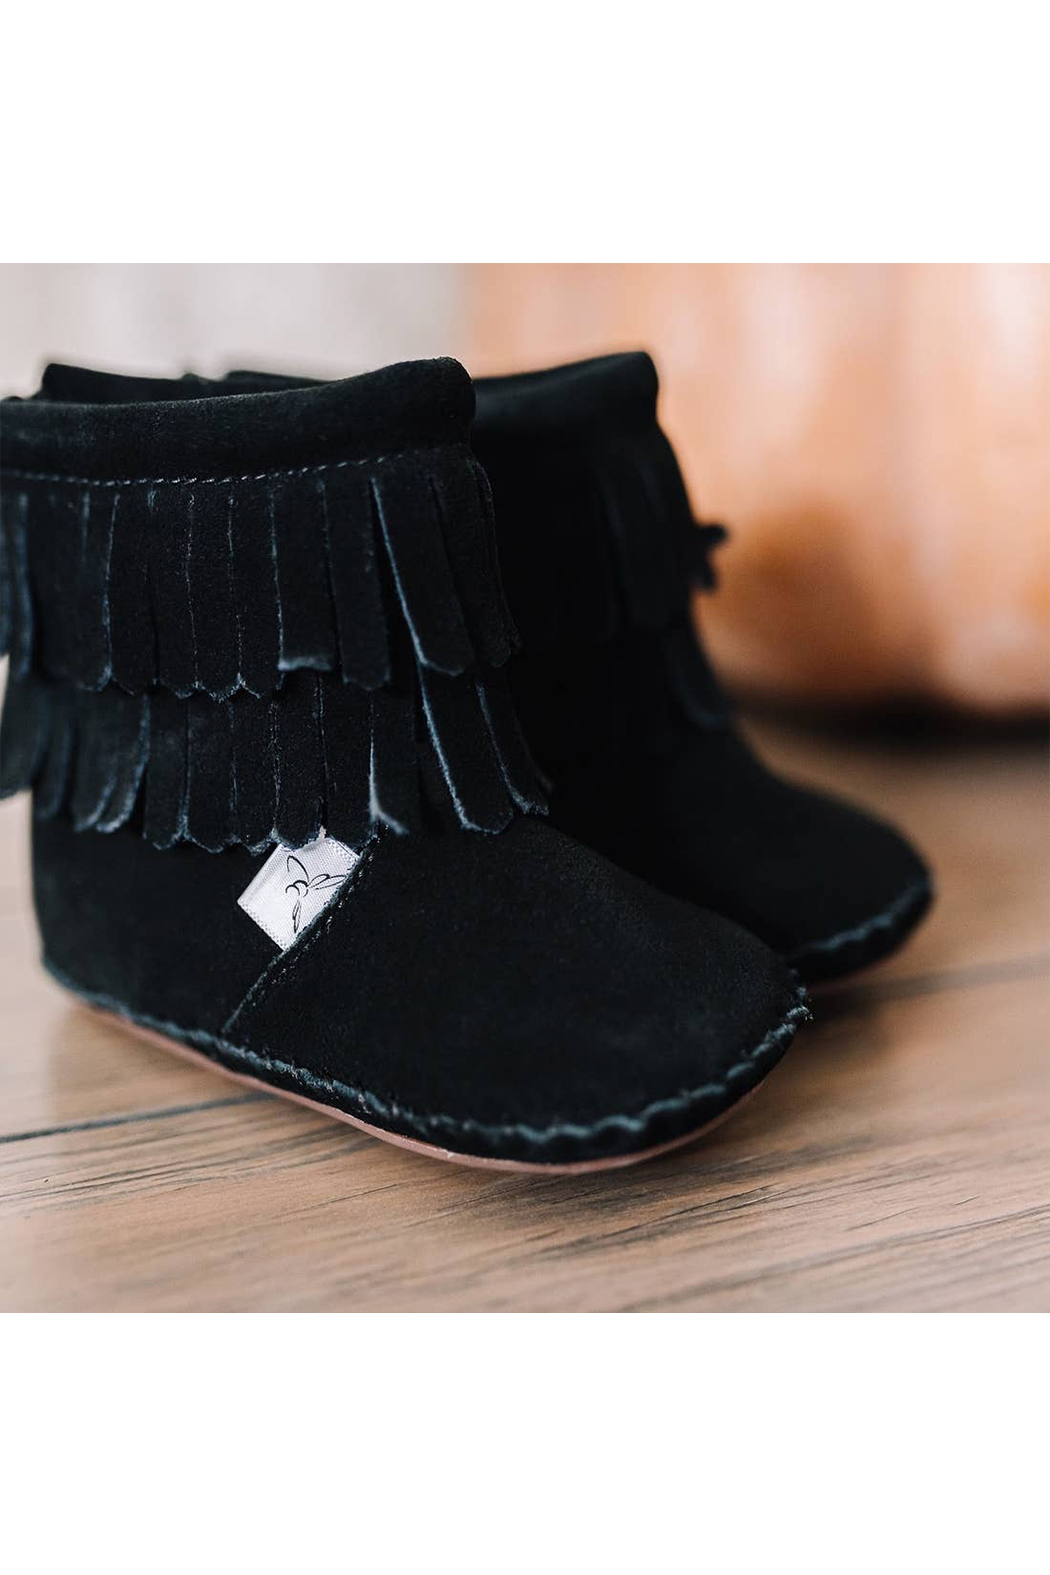 Little Love Bug Company Black Cozy Boot - Side Cropped Image